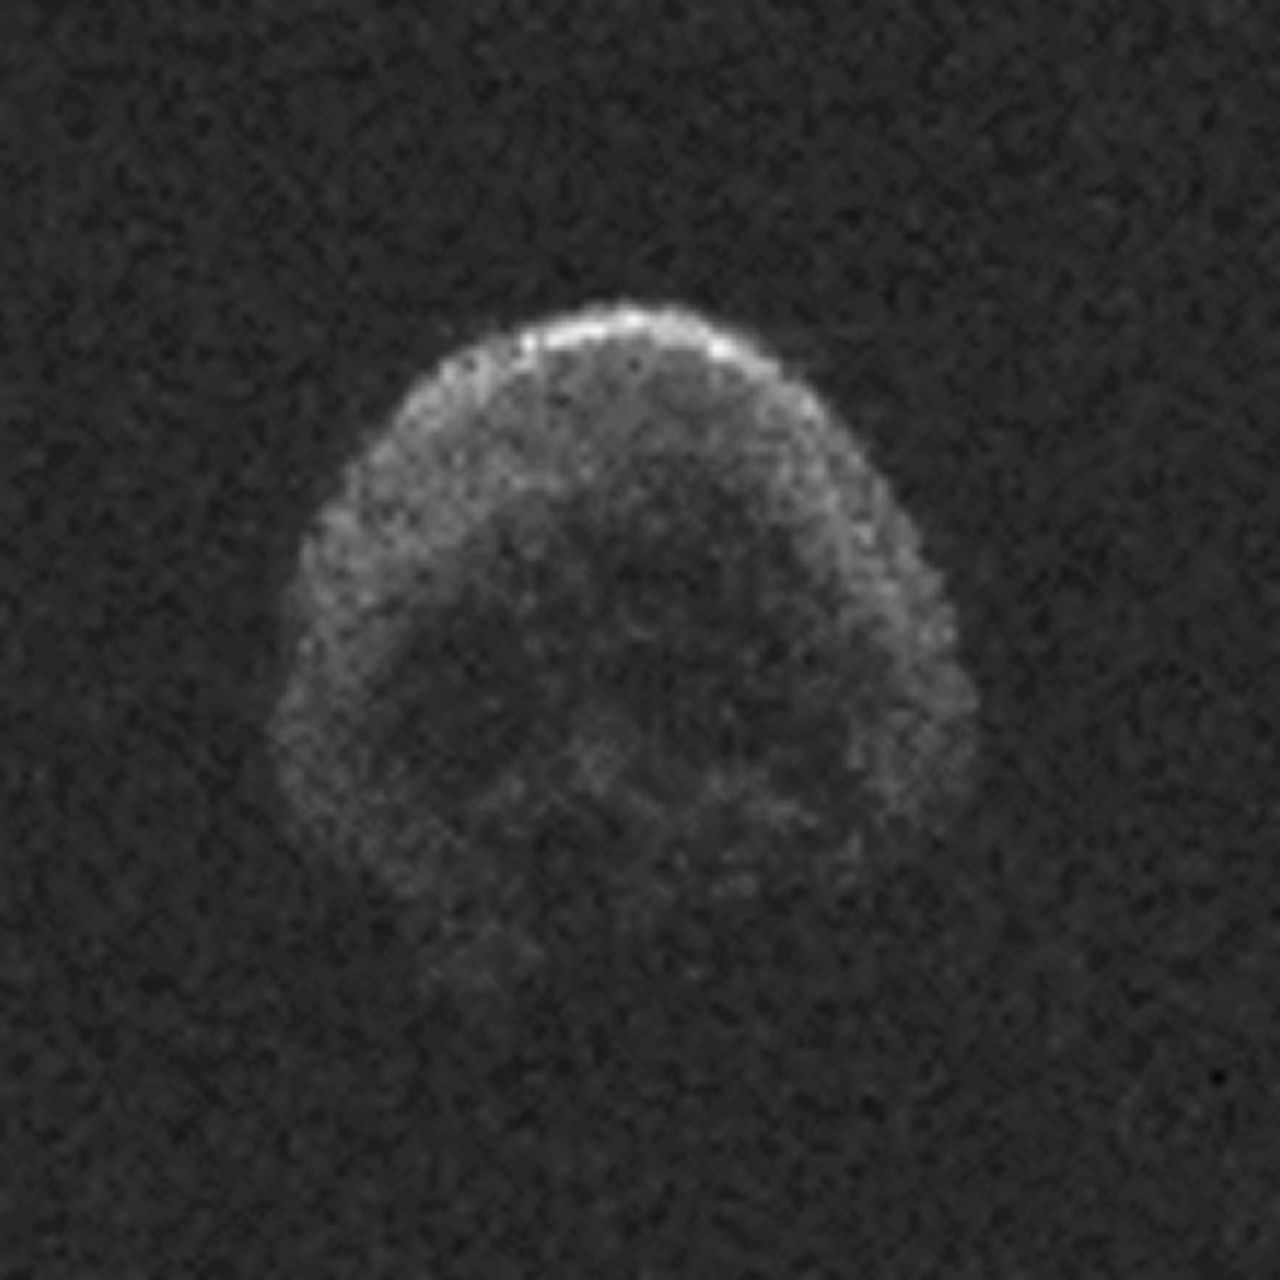 Skull asteroid to fly past Earth